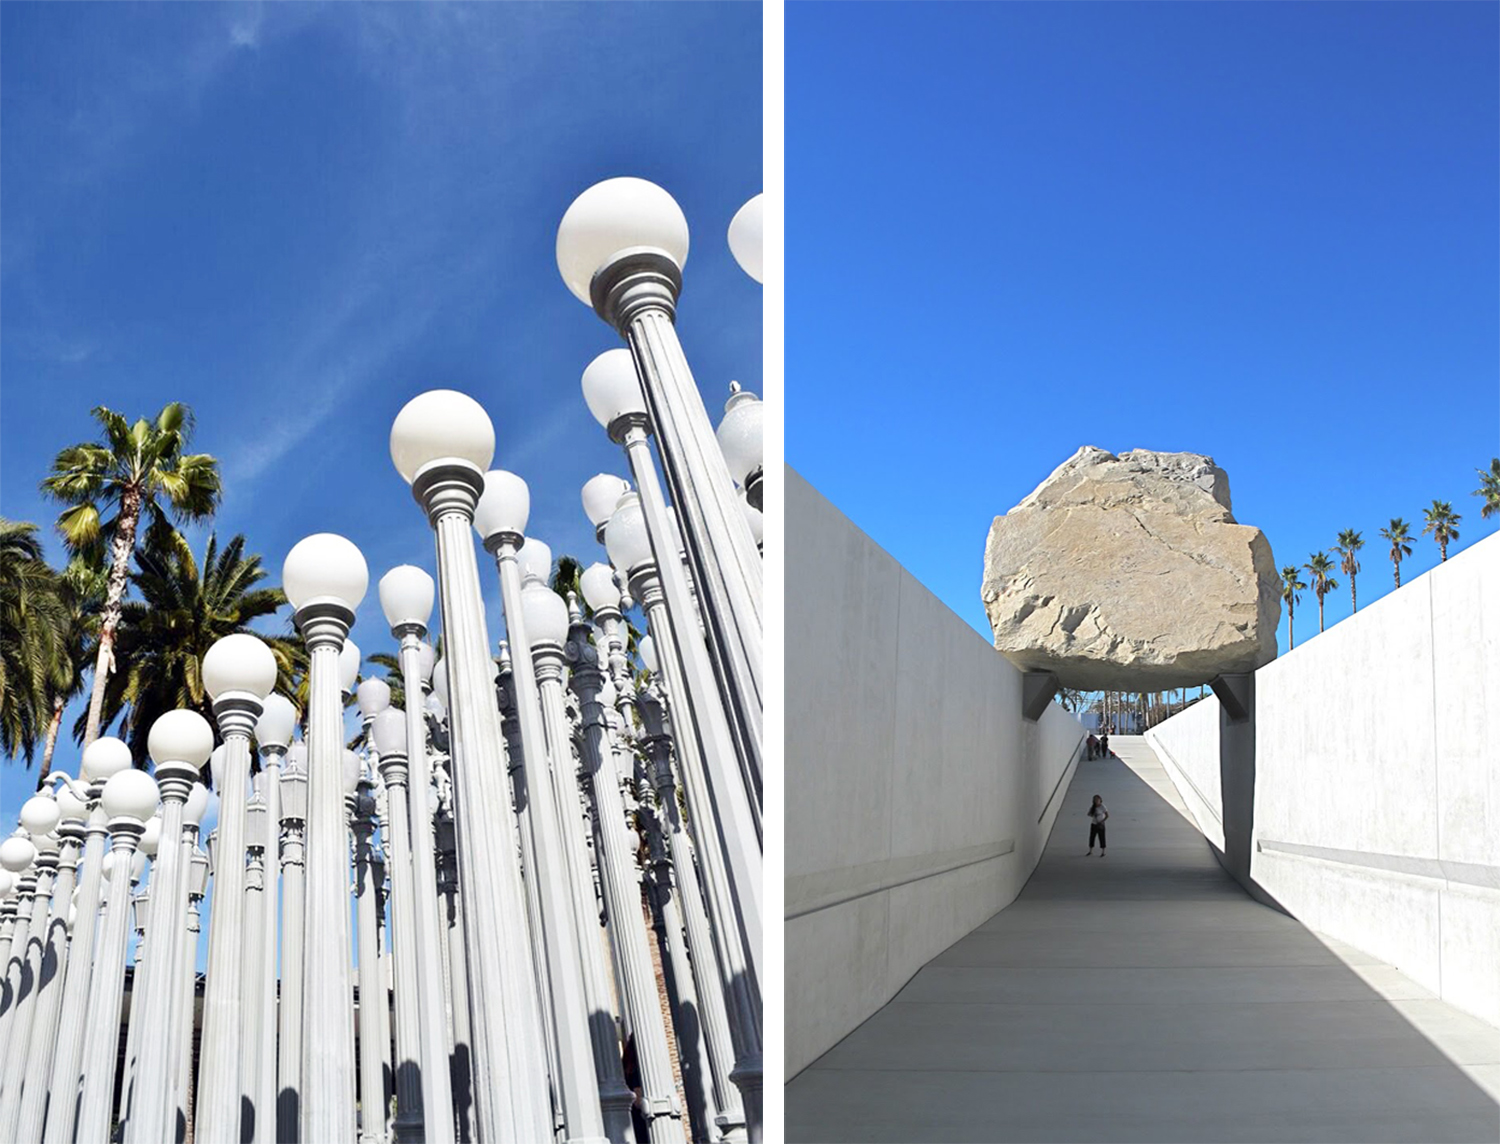 cool-photoshoot-locations-in-LA